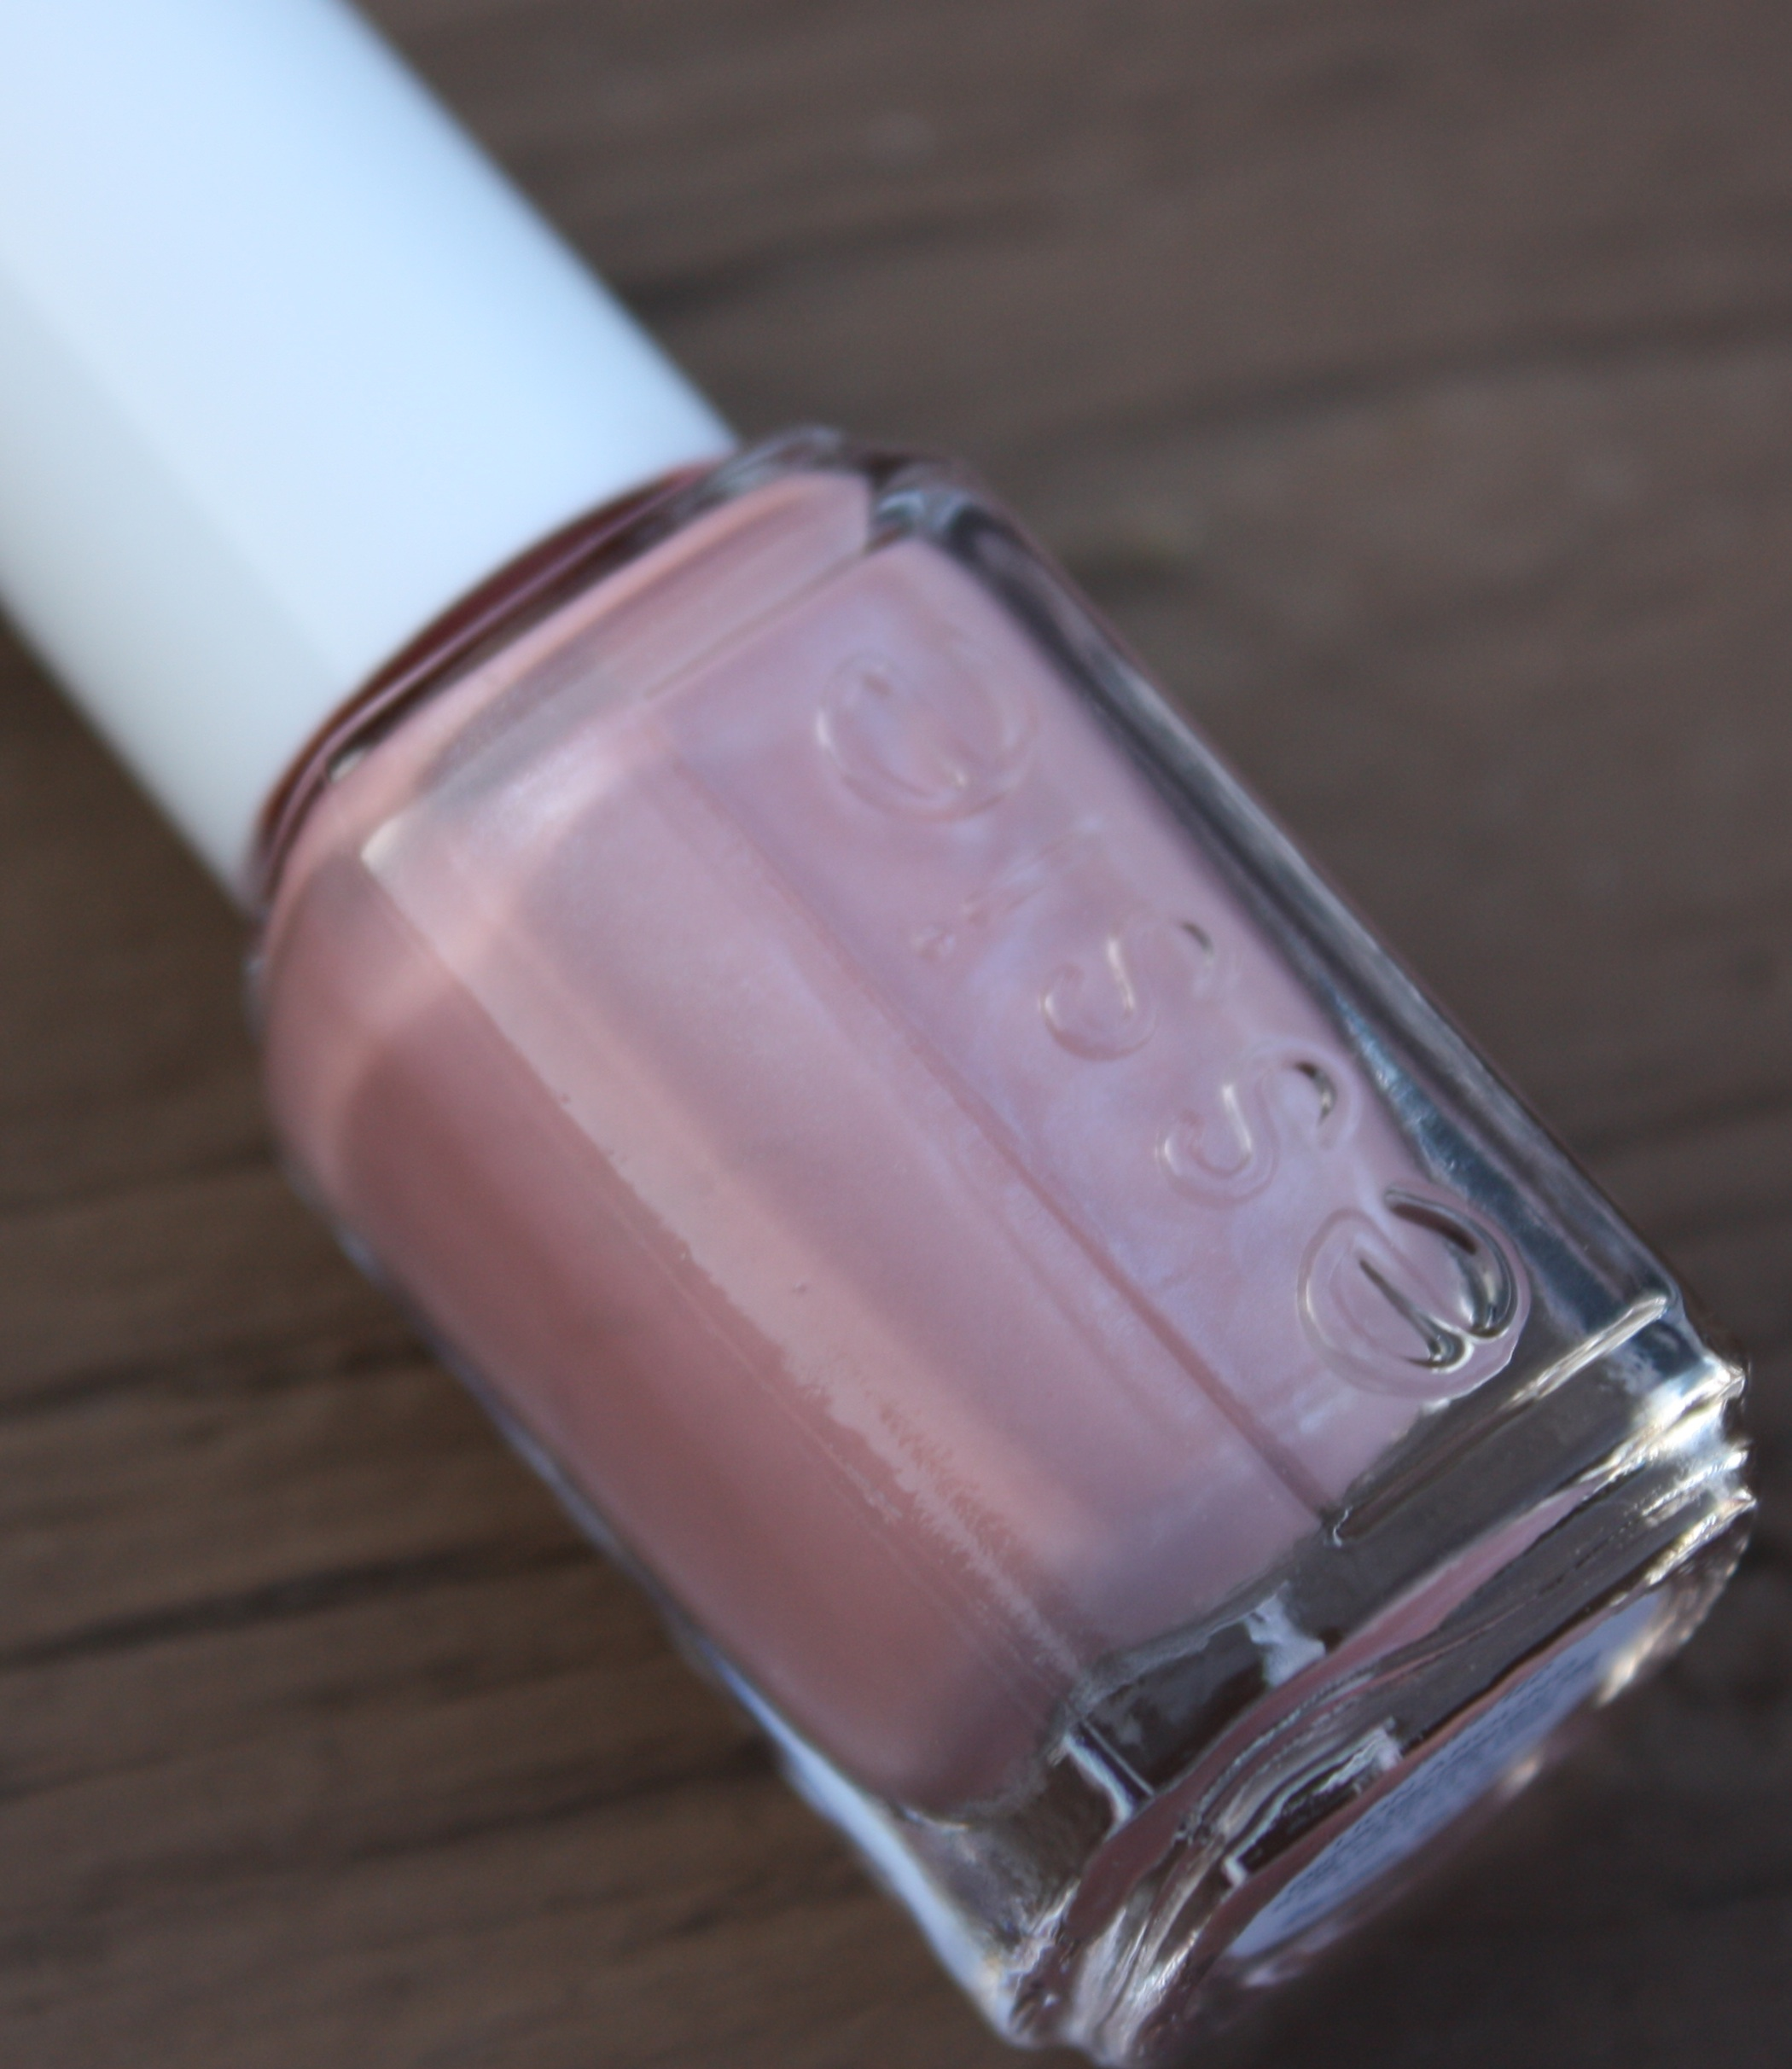 Essie Lion Around – horrendous color